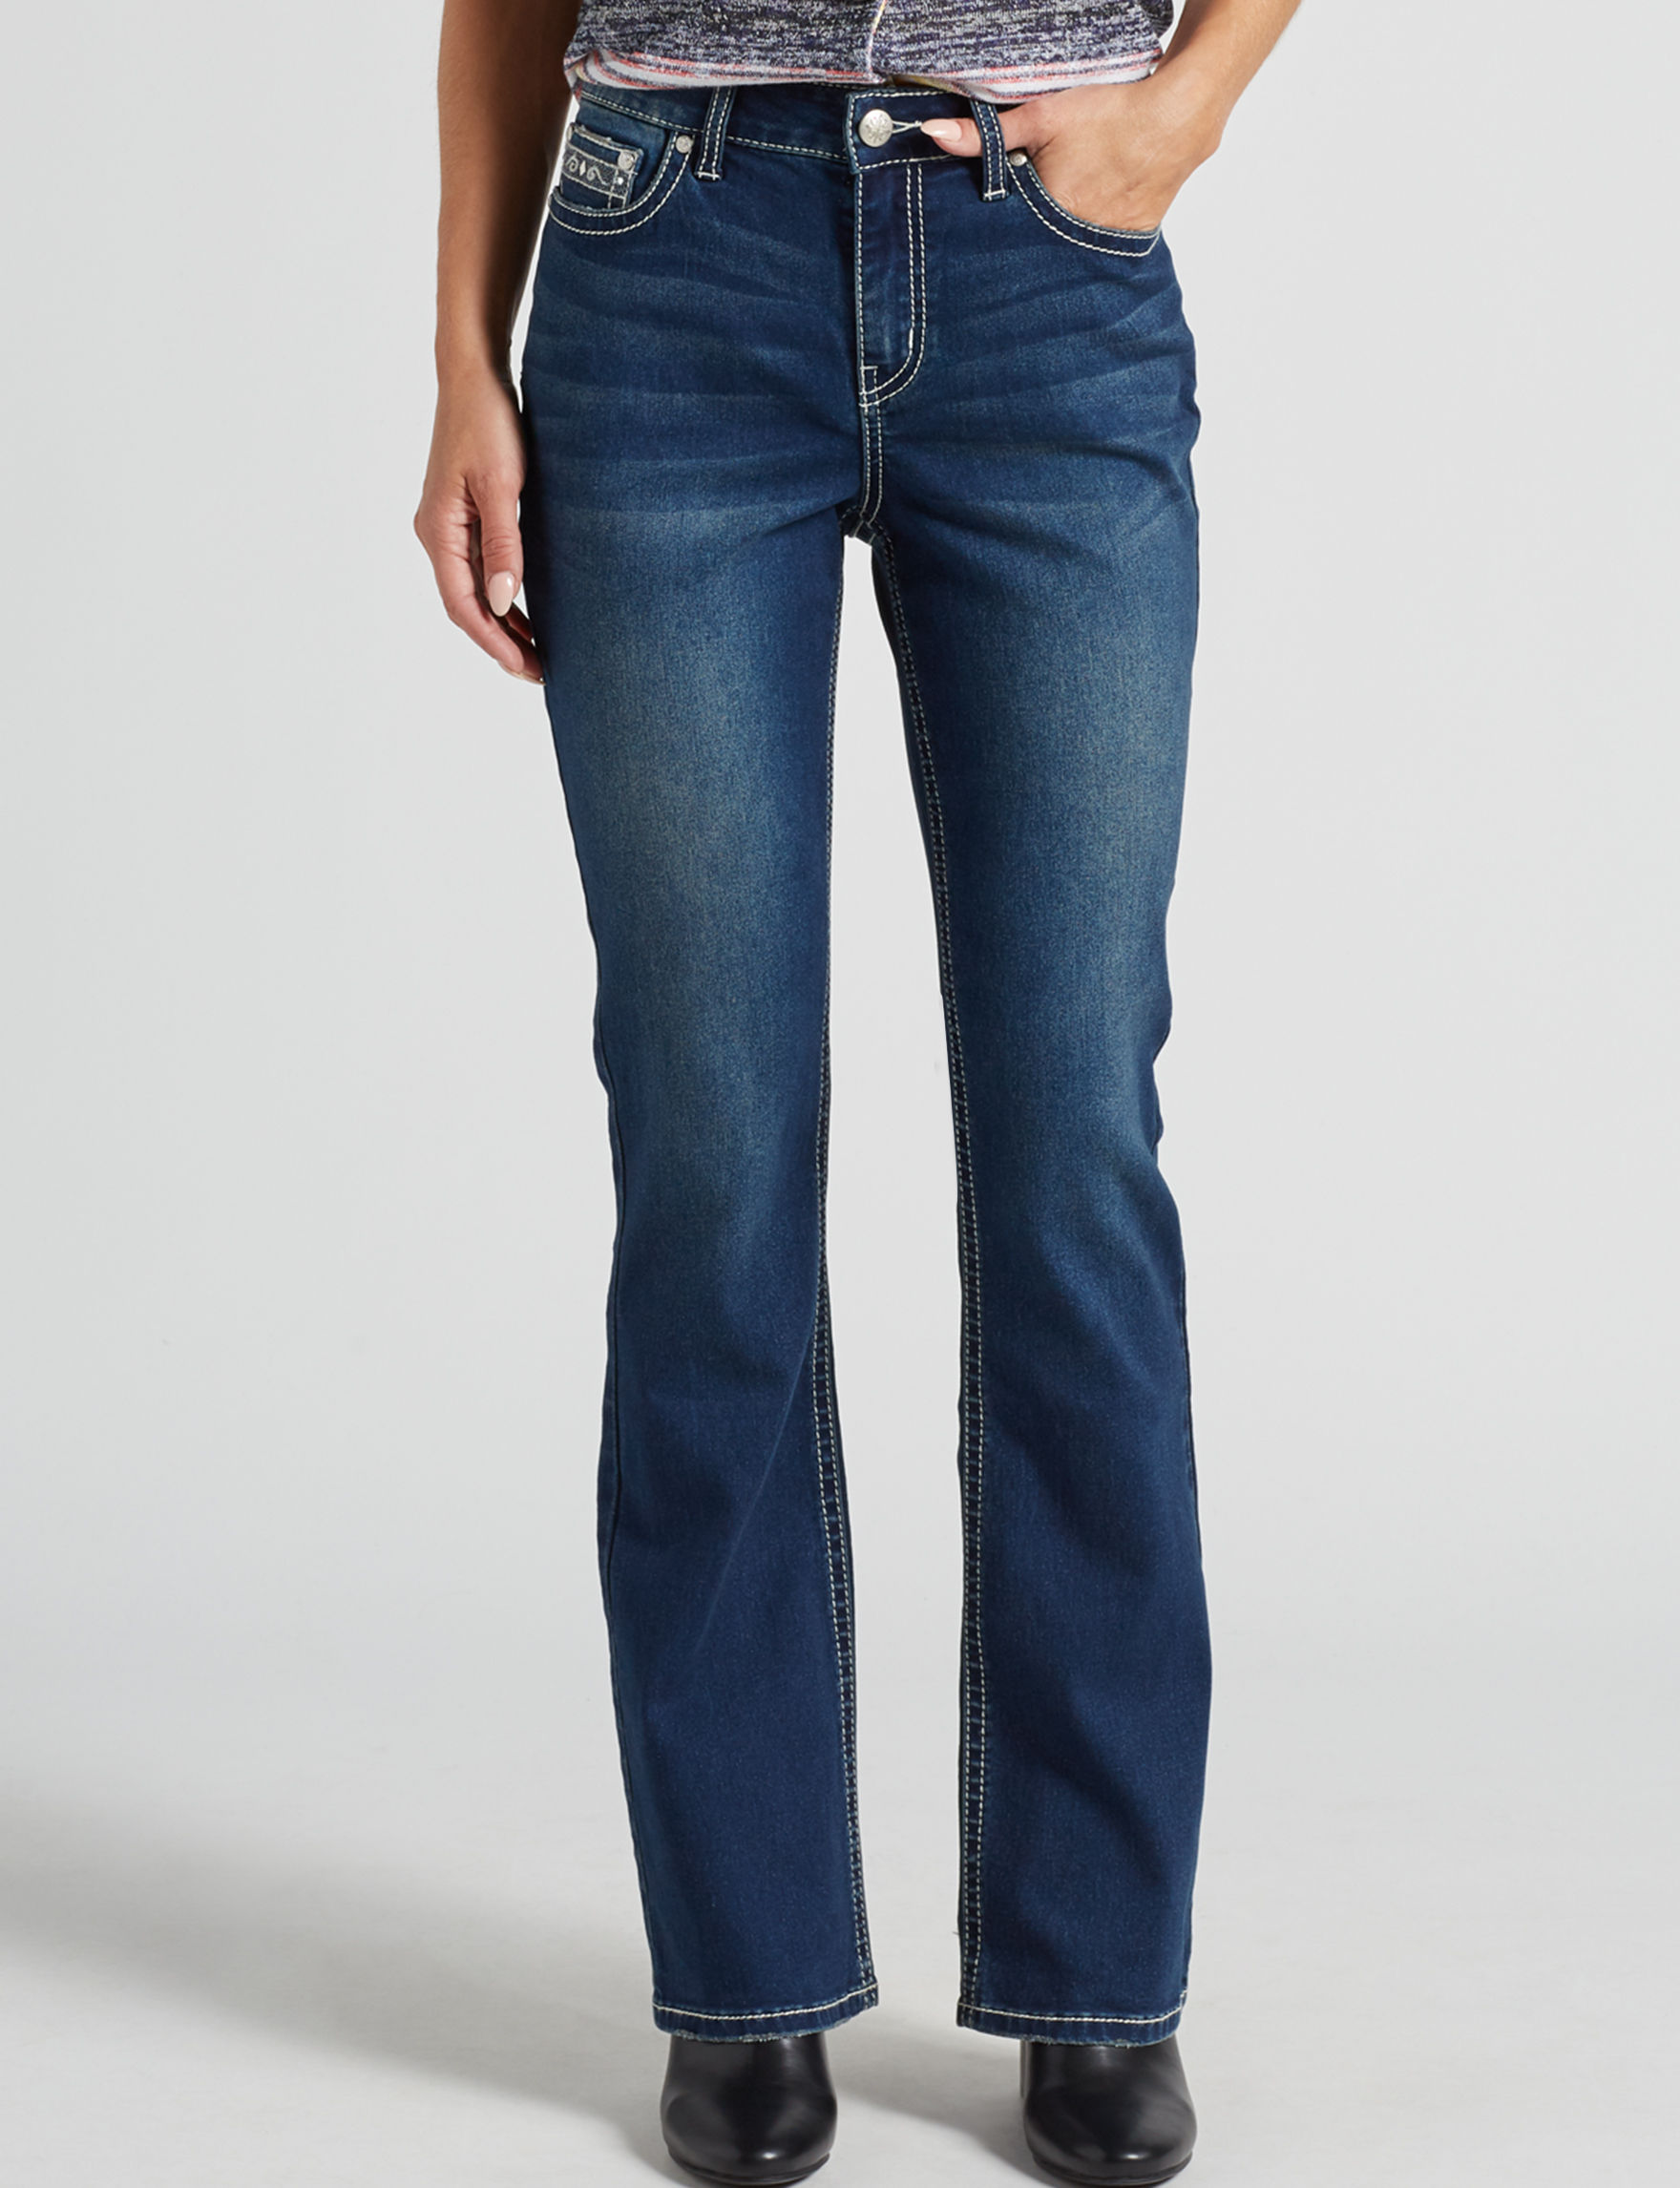 Love Indigo Dark Wash Bootcut